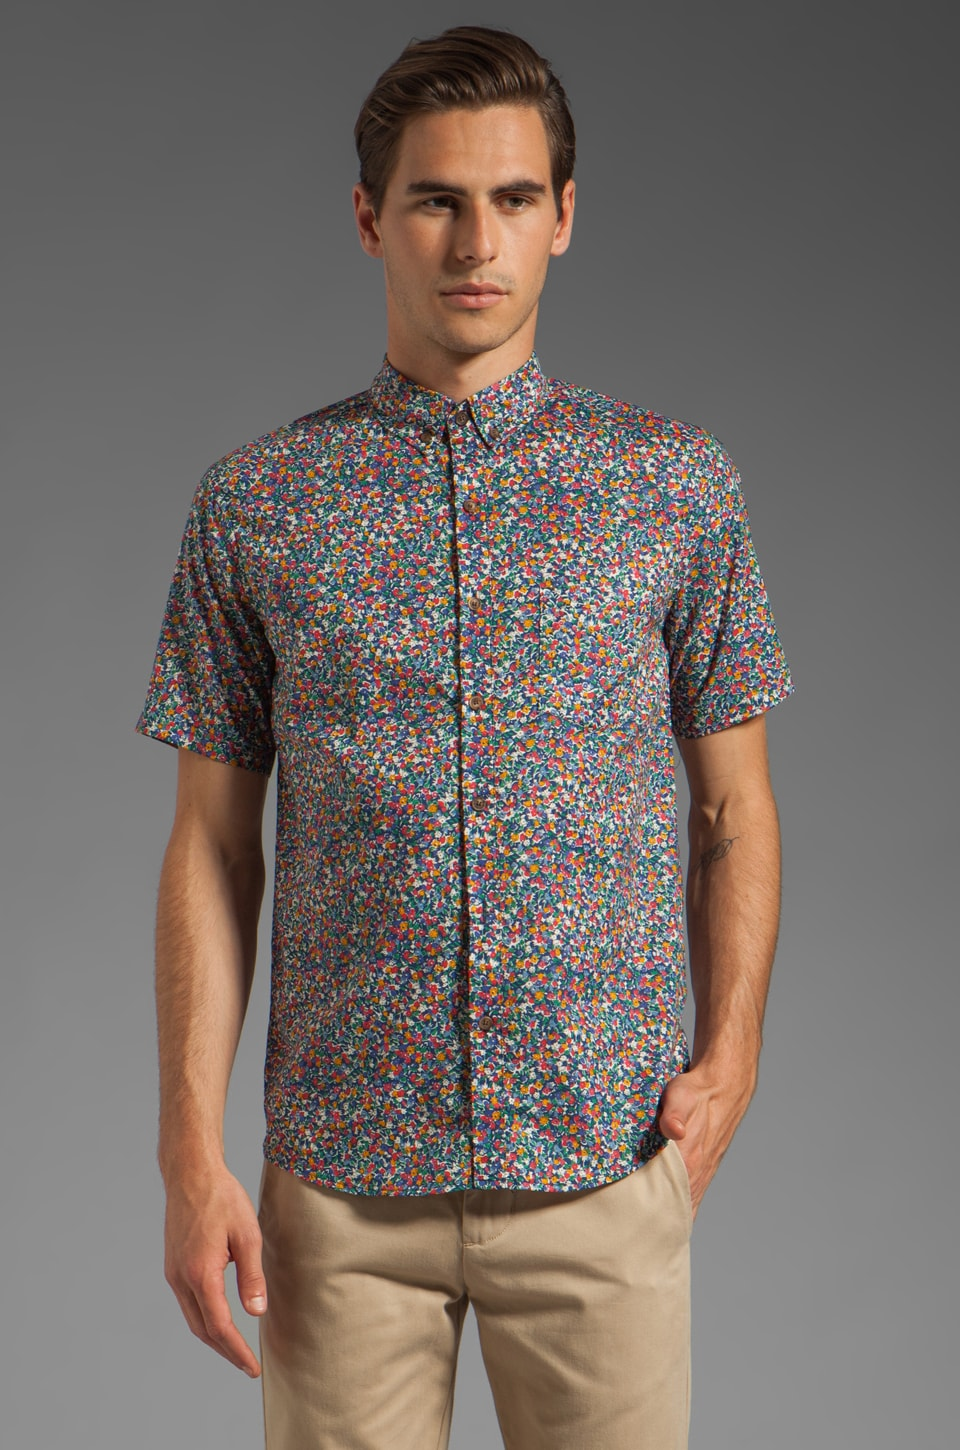 Vanishing Elephant Classic Short Sleeved Shirt in Blue Floral